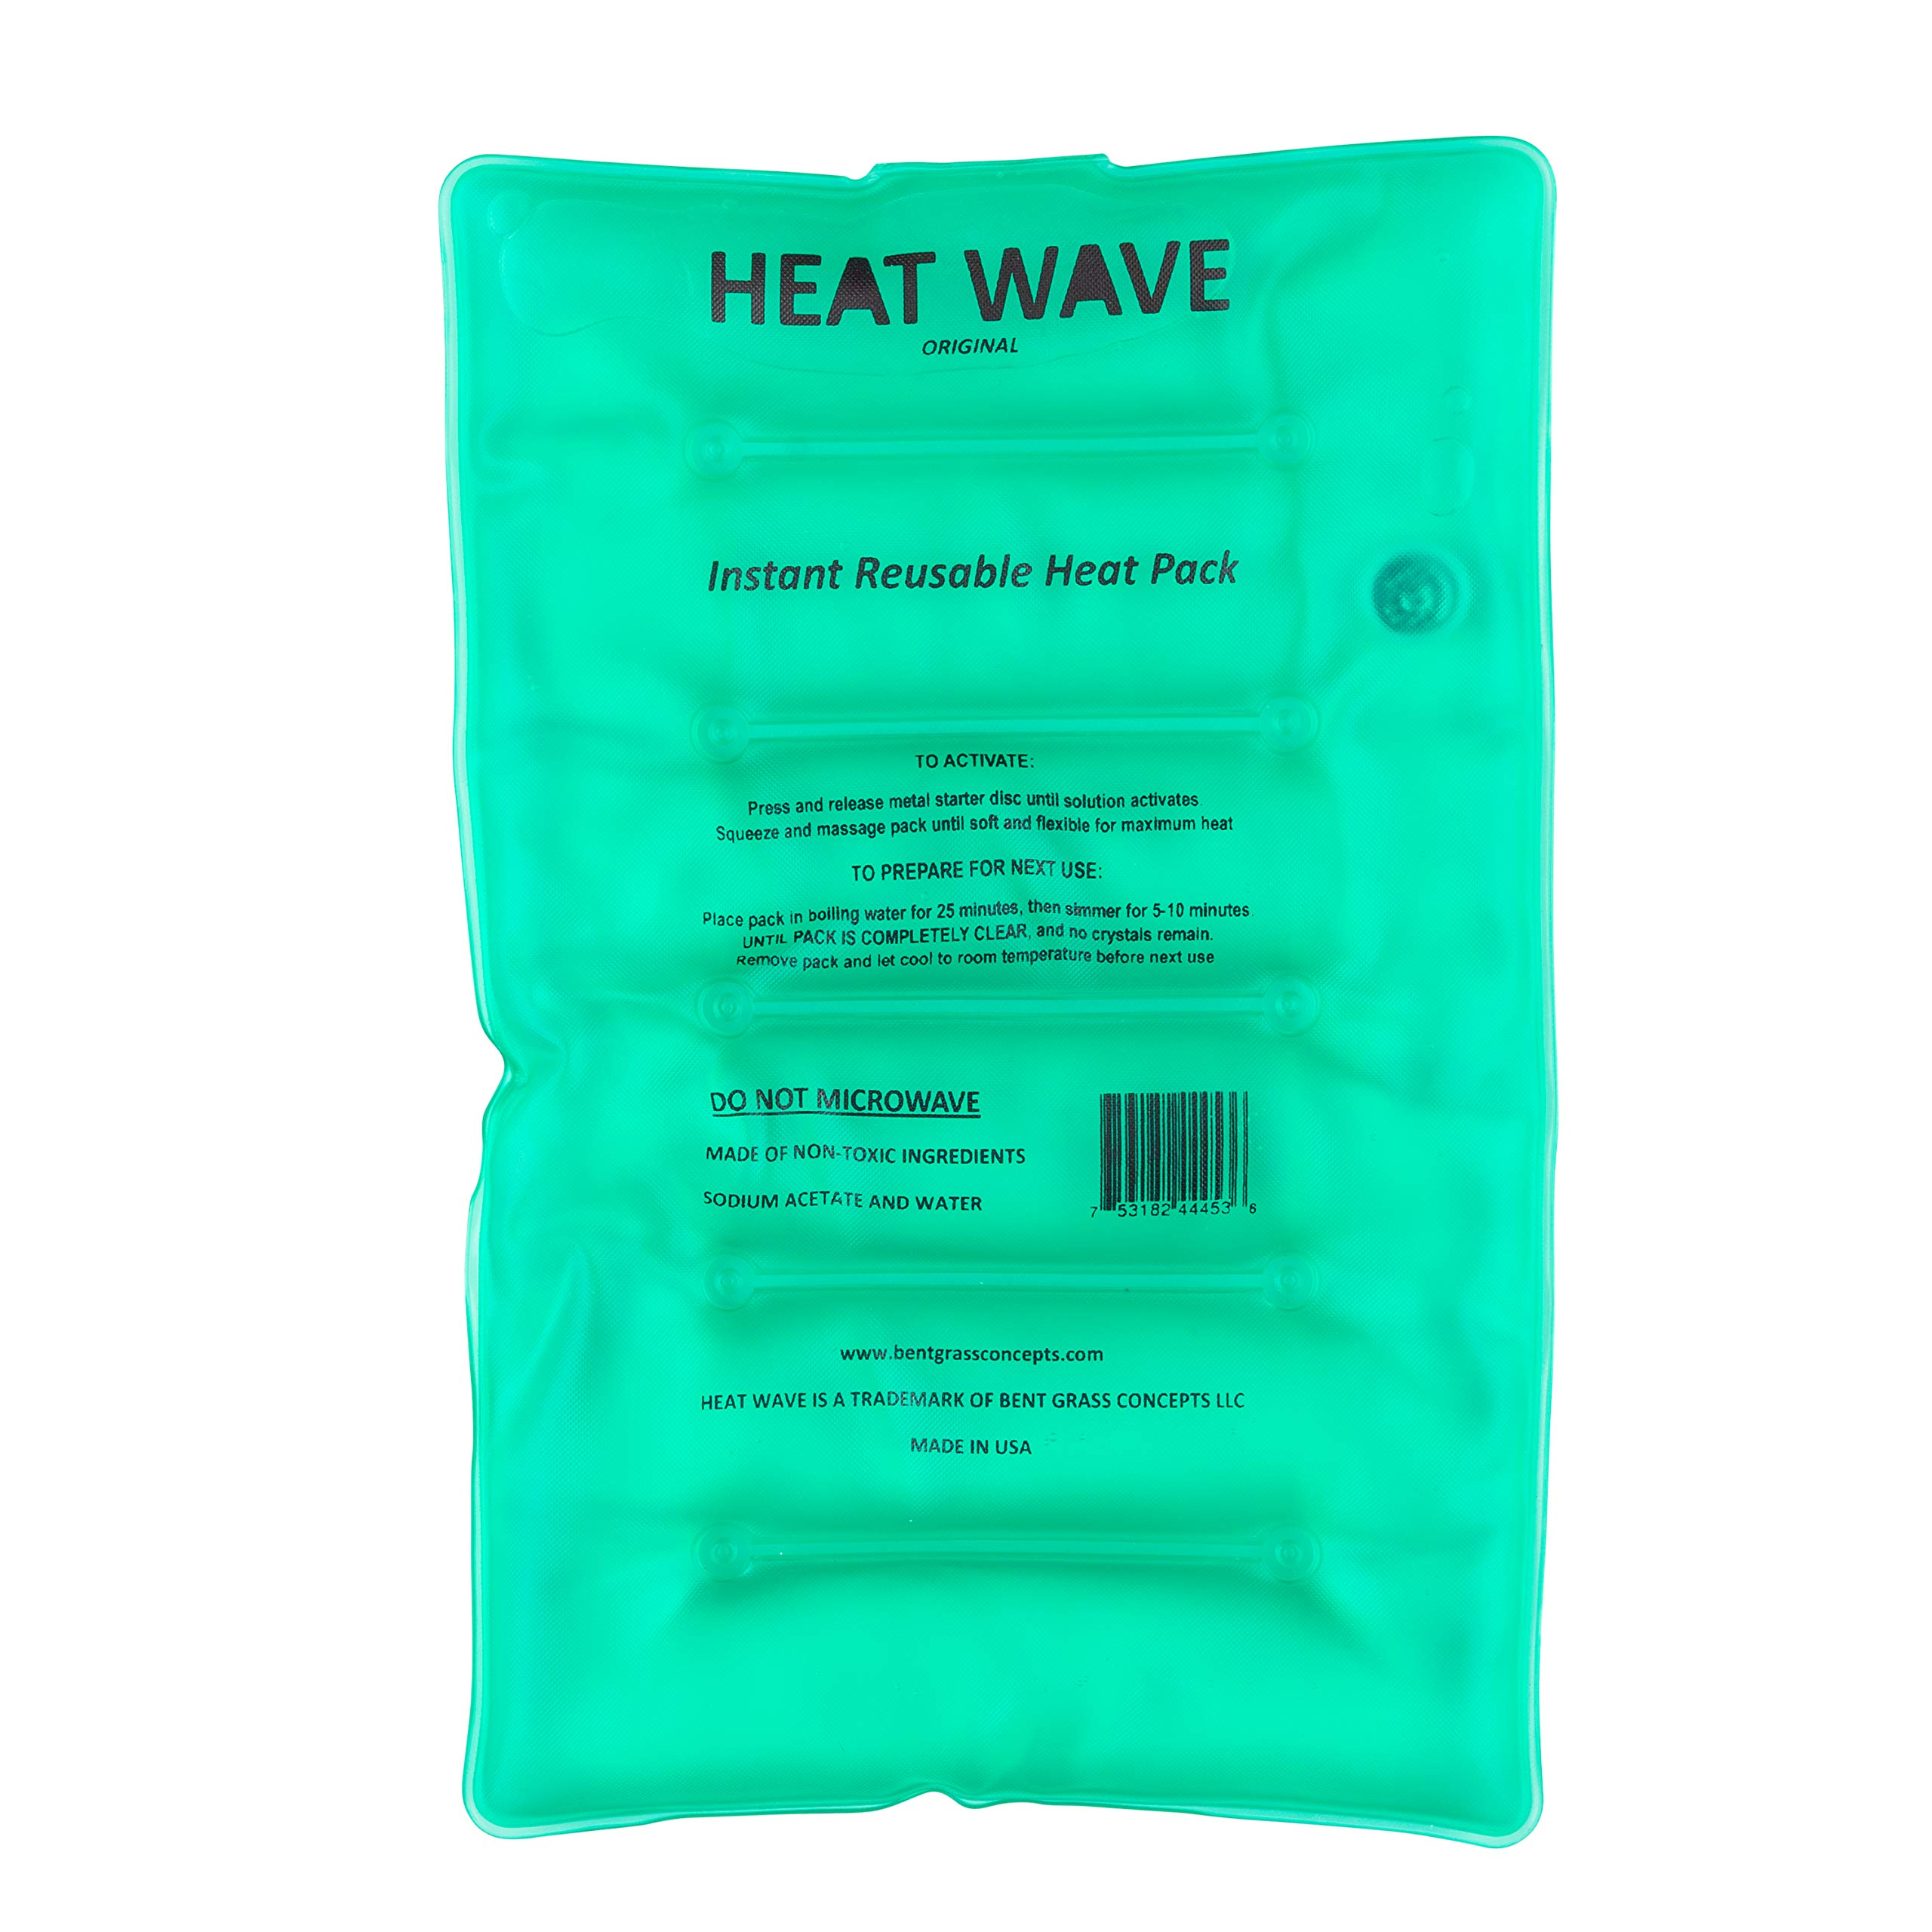 HEAT WAVE Instant Reusable Heat Packs - Large (8x12''), Reusable Heat Pack for Muscle Aches, Back Pain, Pain Relief, Click Heat - Made in USA by Heat Wave